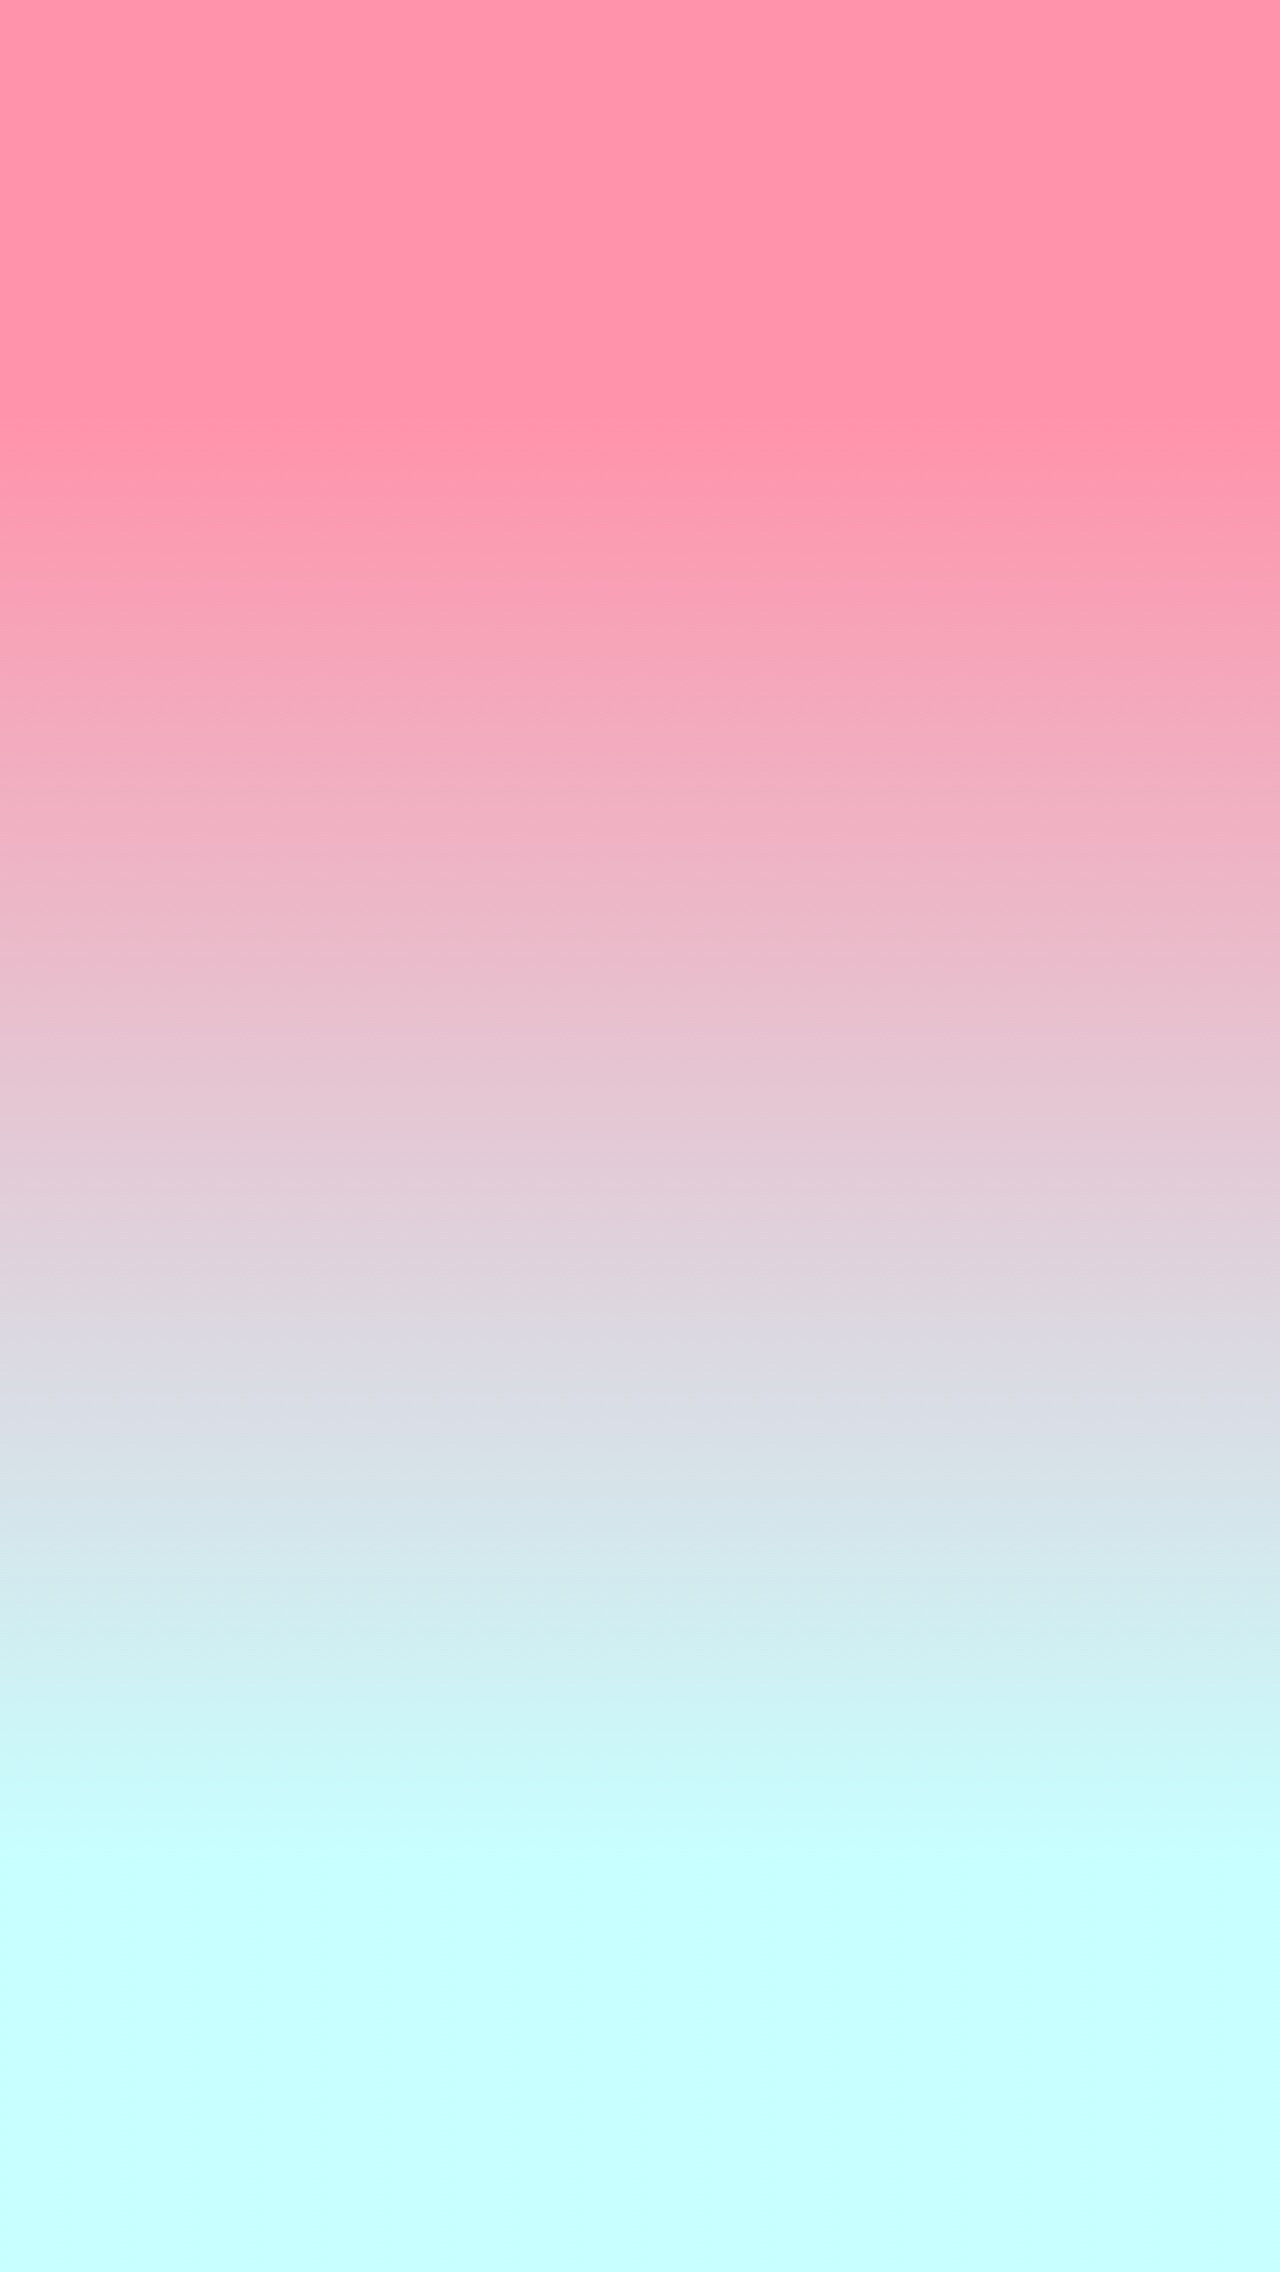 Pink Ombre Wallpaper 60 images 1280x2272